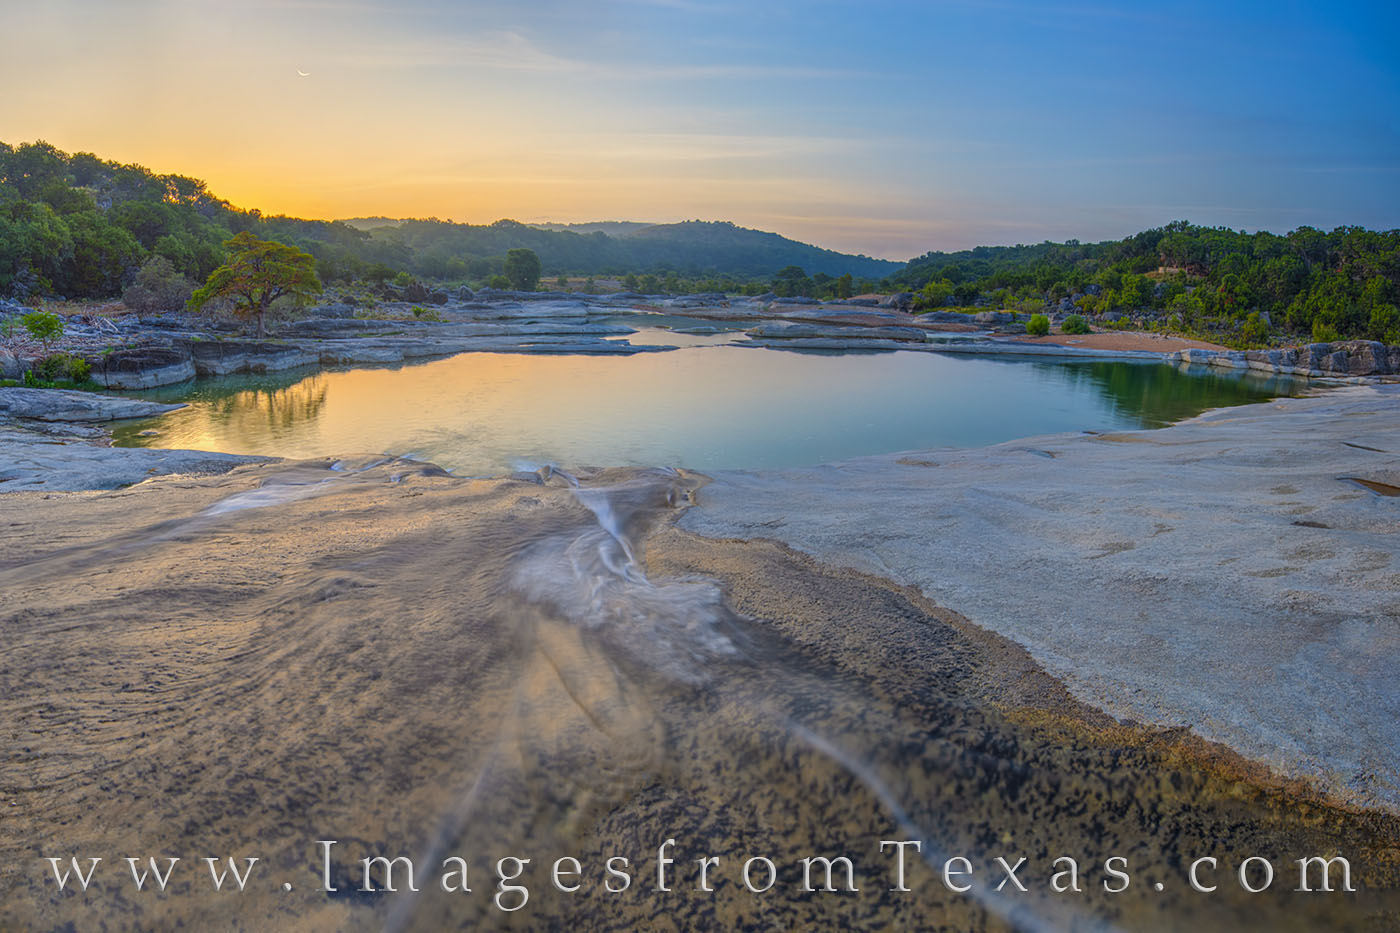 pedernales river, water, river, state park, crescent moon, moon, sunrise, peace, solitude, hill country, photo